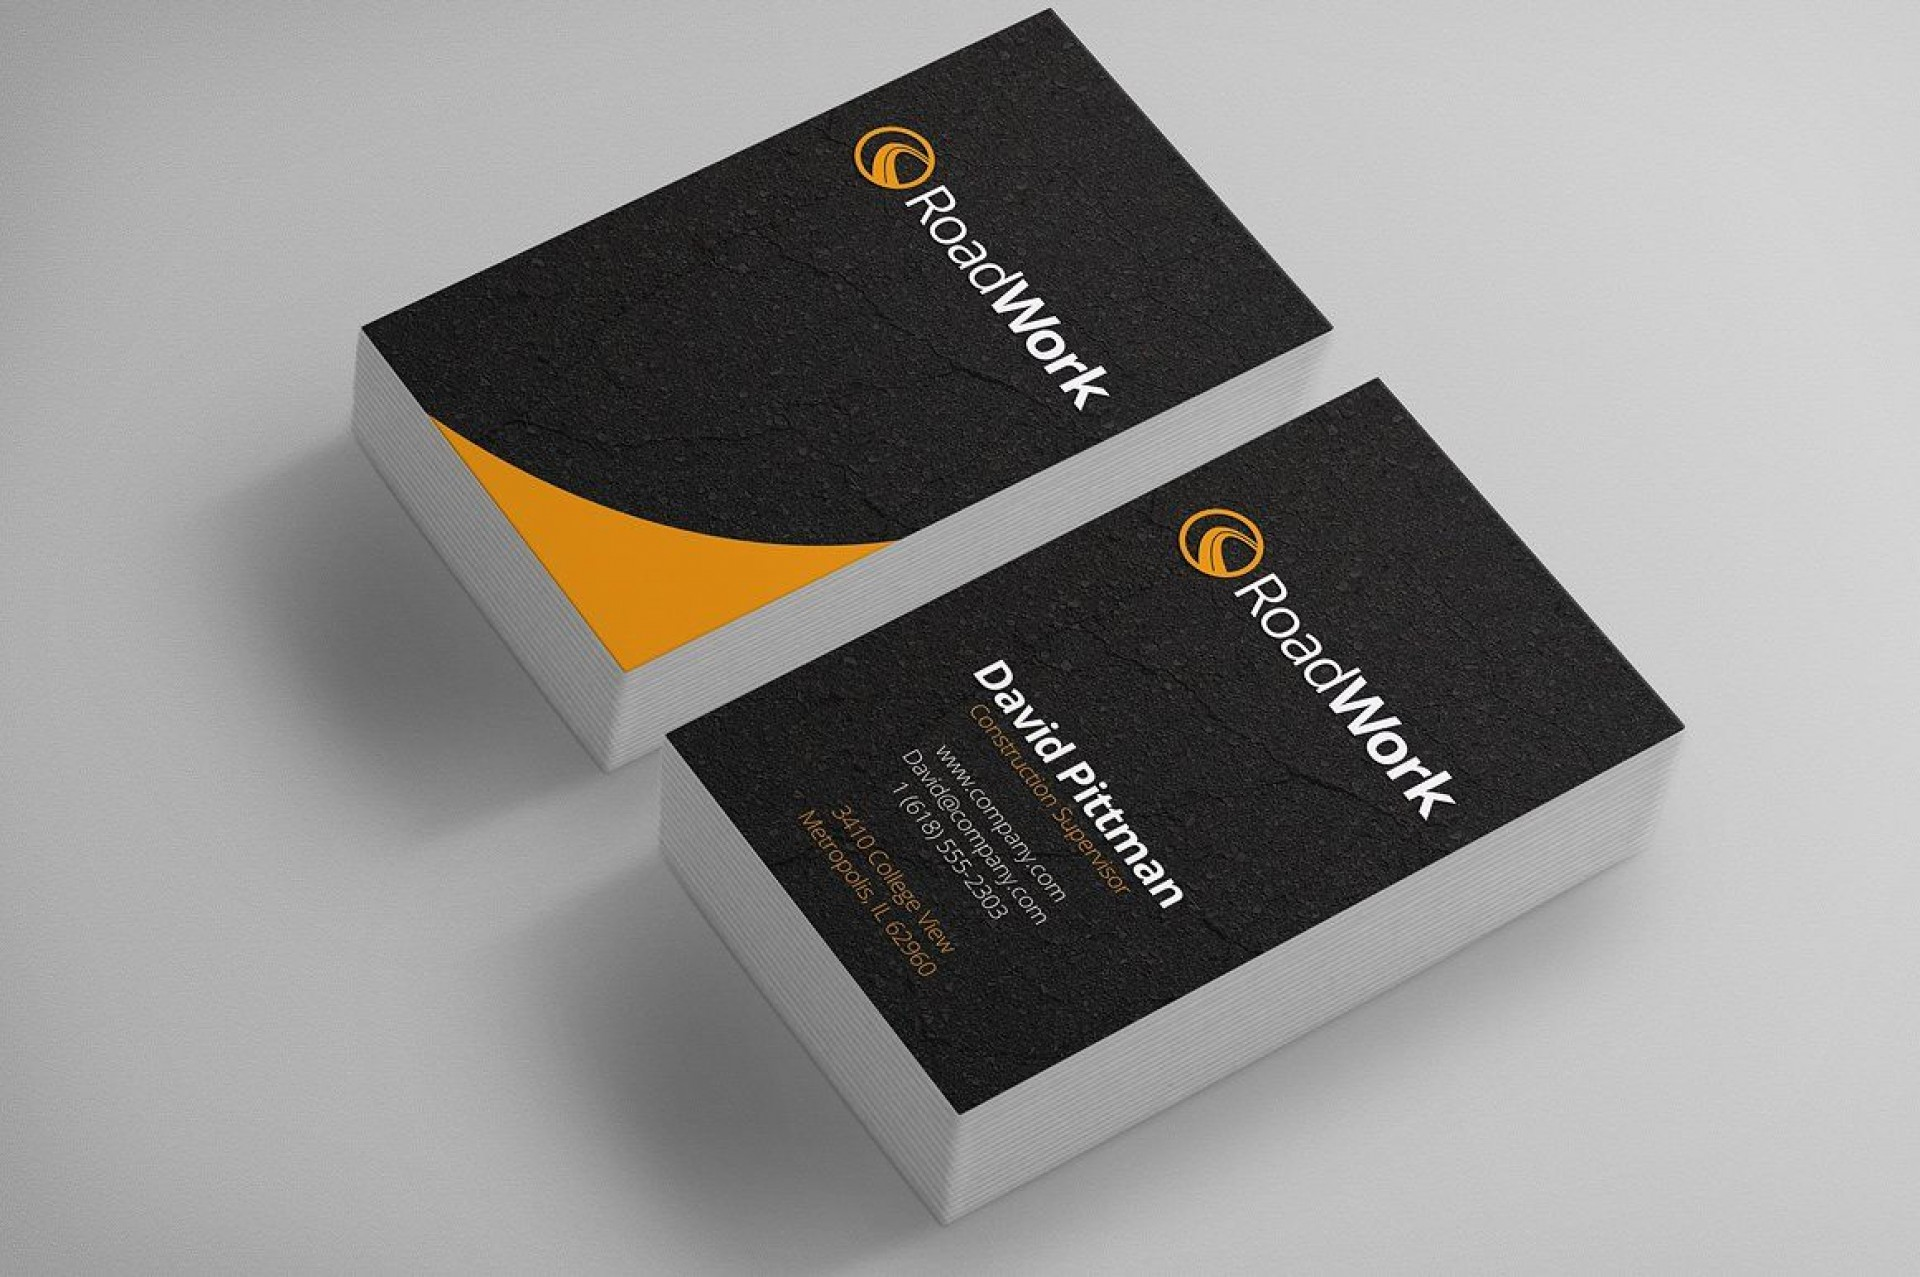 003 Awful Construction Busines Card Template High Definition  Templates Visiting Company Format Design Psd1920